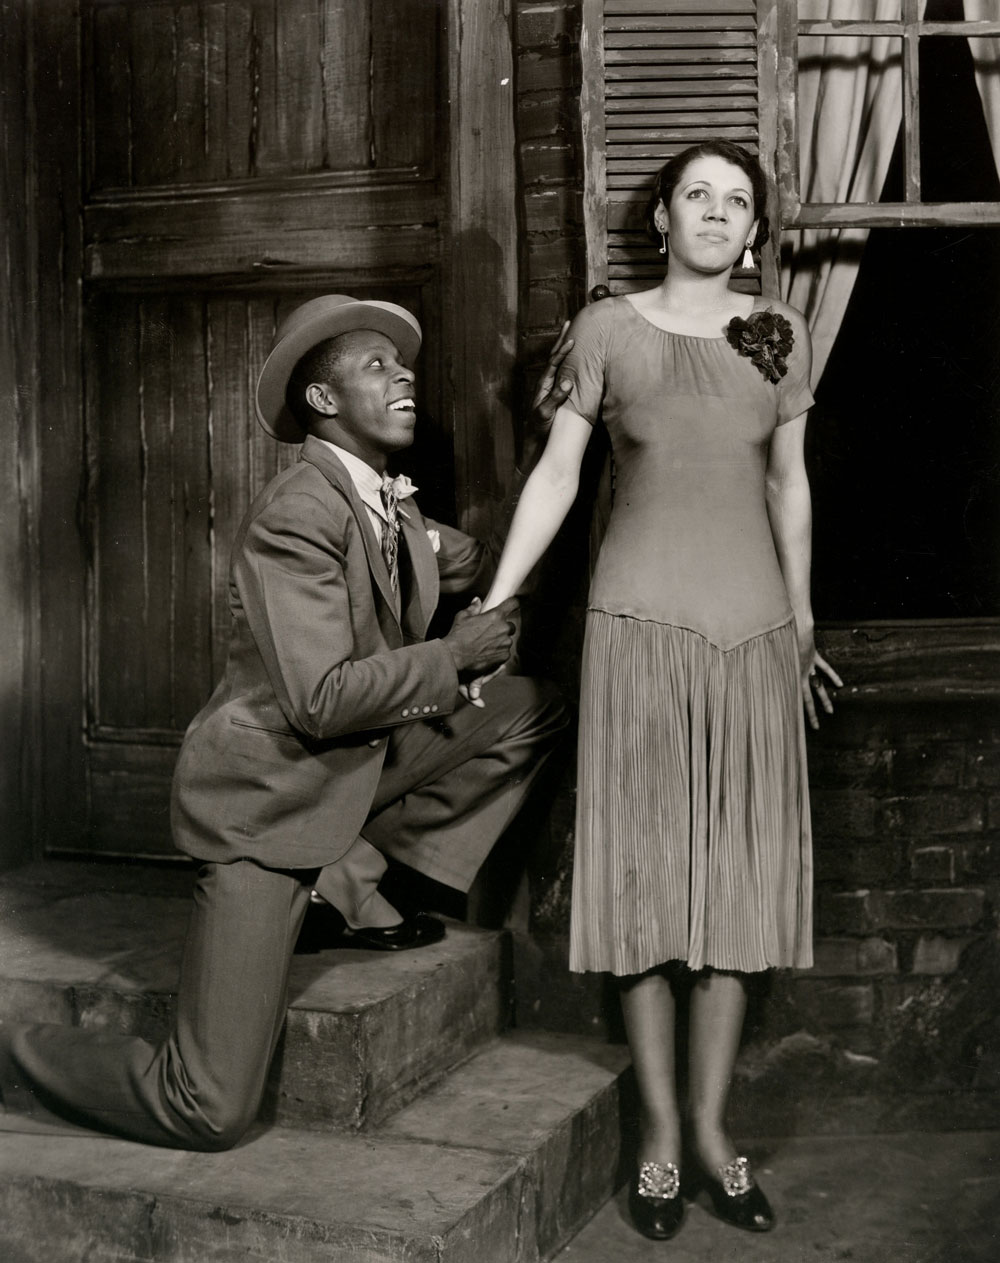 John Bubbles (Sportin' Life) and Anne Brown (Bess), 1935. Image credit: Ira & Leonore Gershwin Trusts